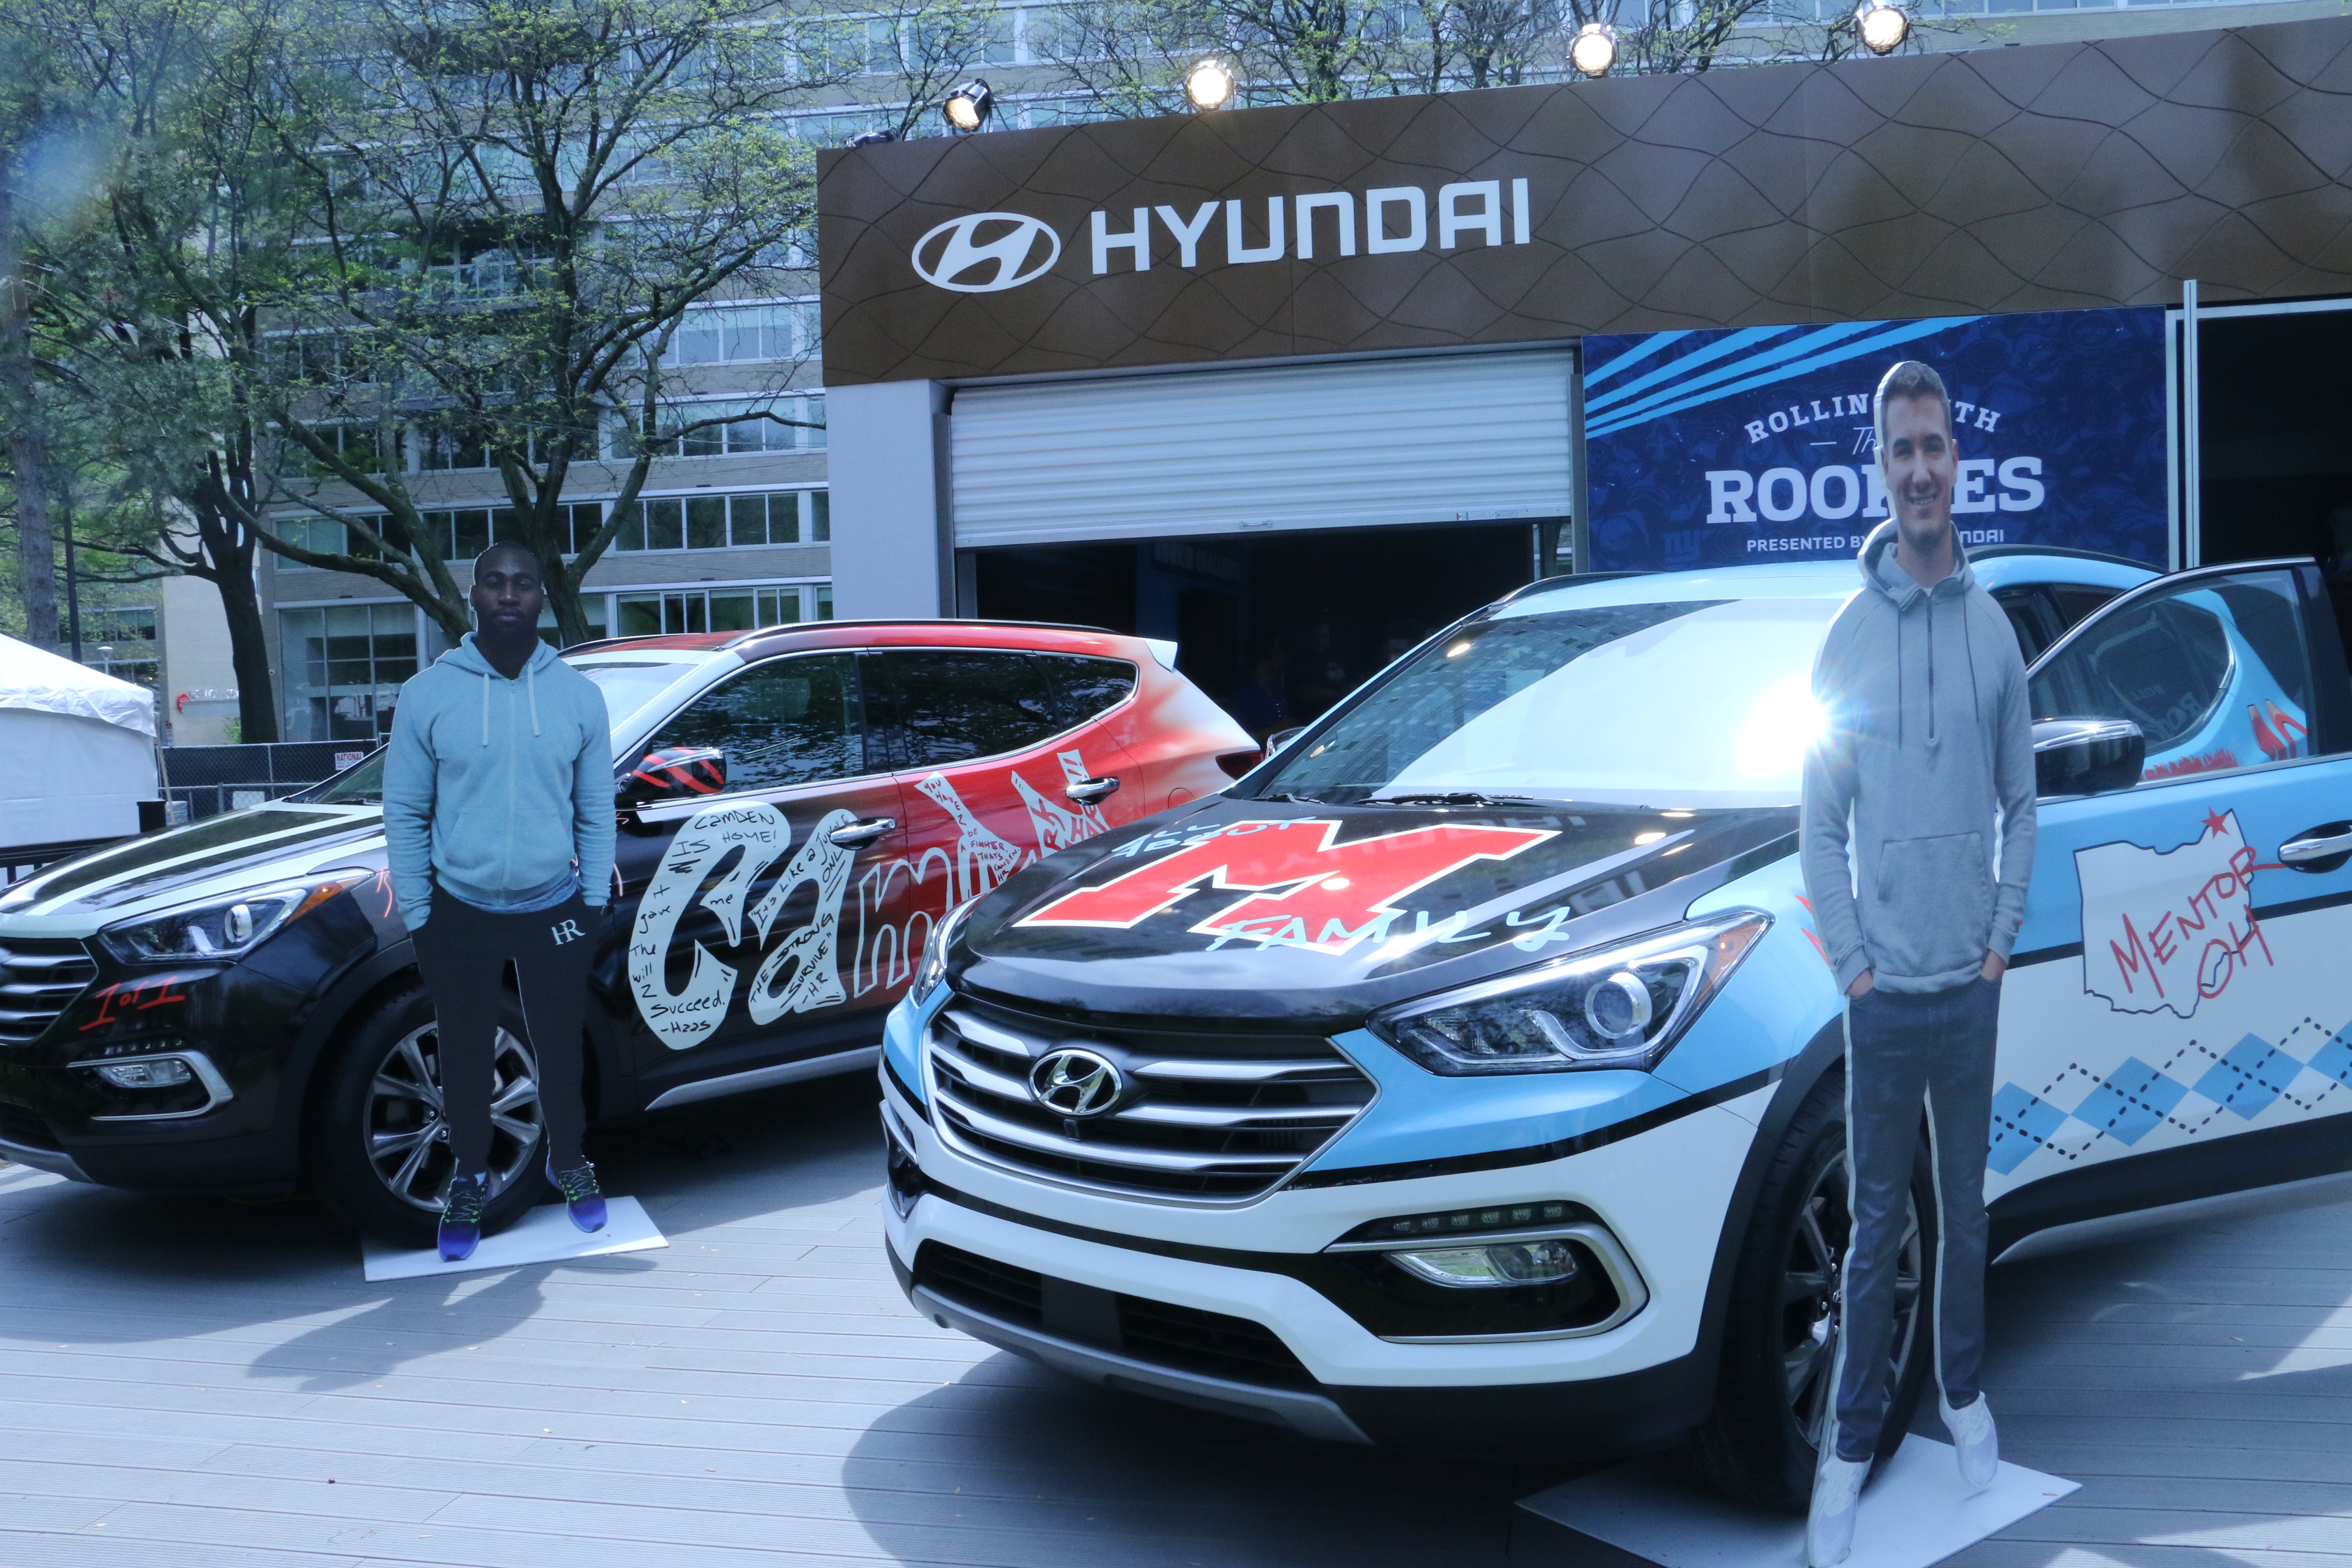 Cleats Designer Marcus Rivero Talks Designing Custom Hyundai